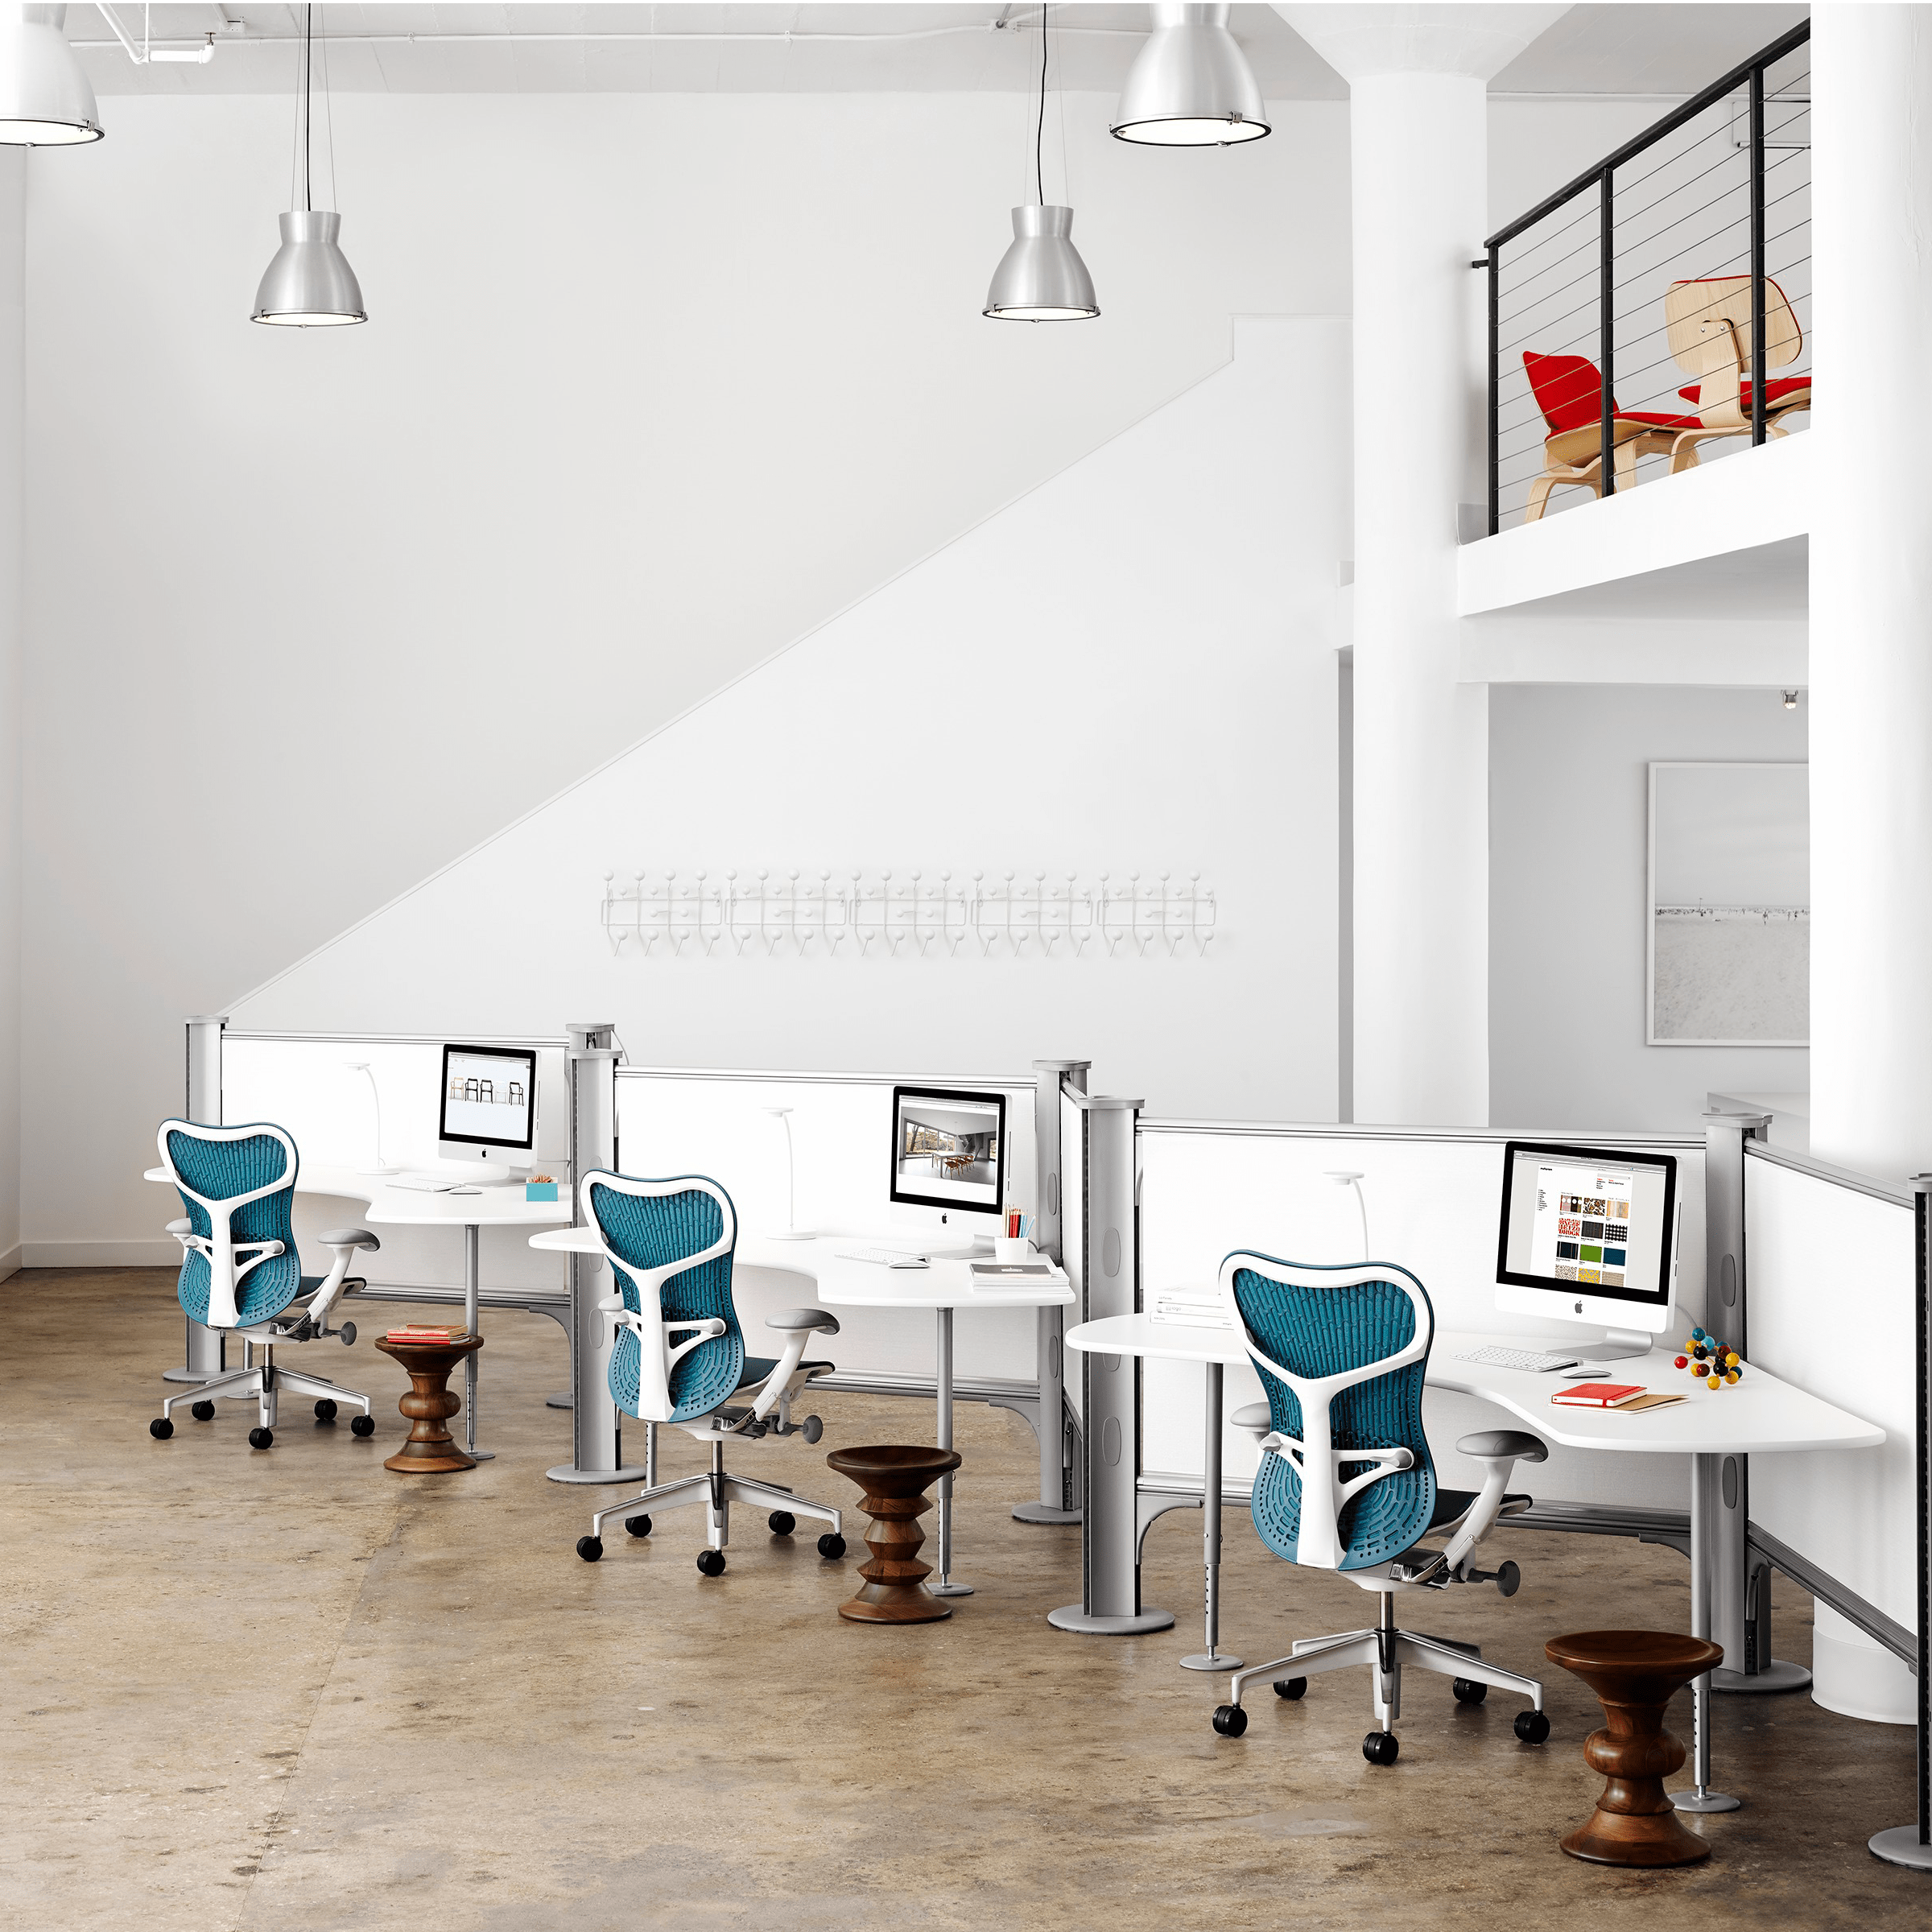 Furniture Design Nyc office furniture dealer nyc: certified herman miller dealer in nyc